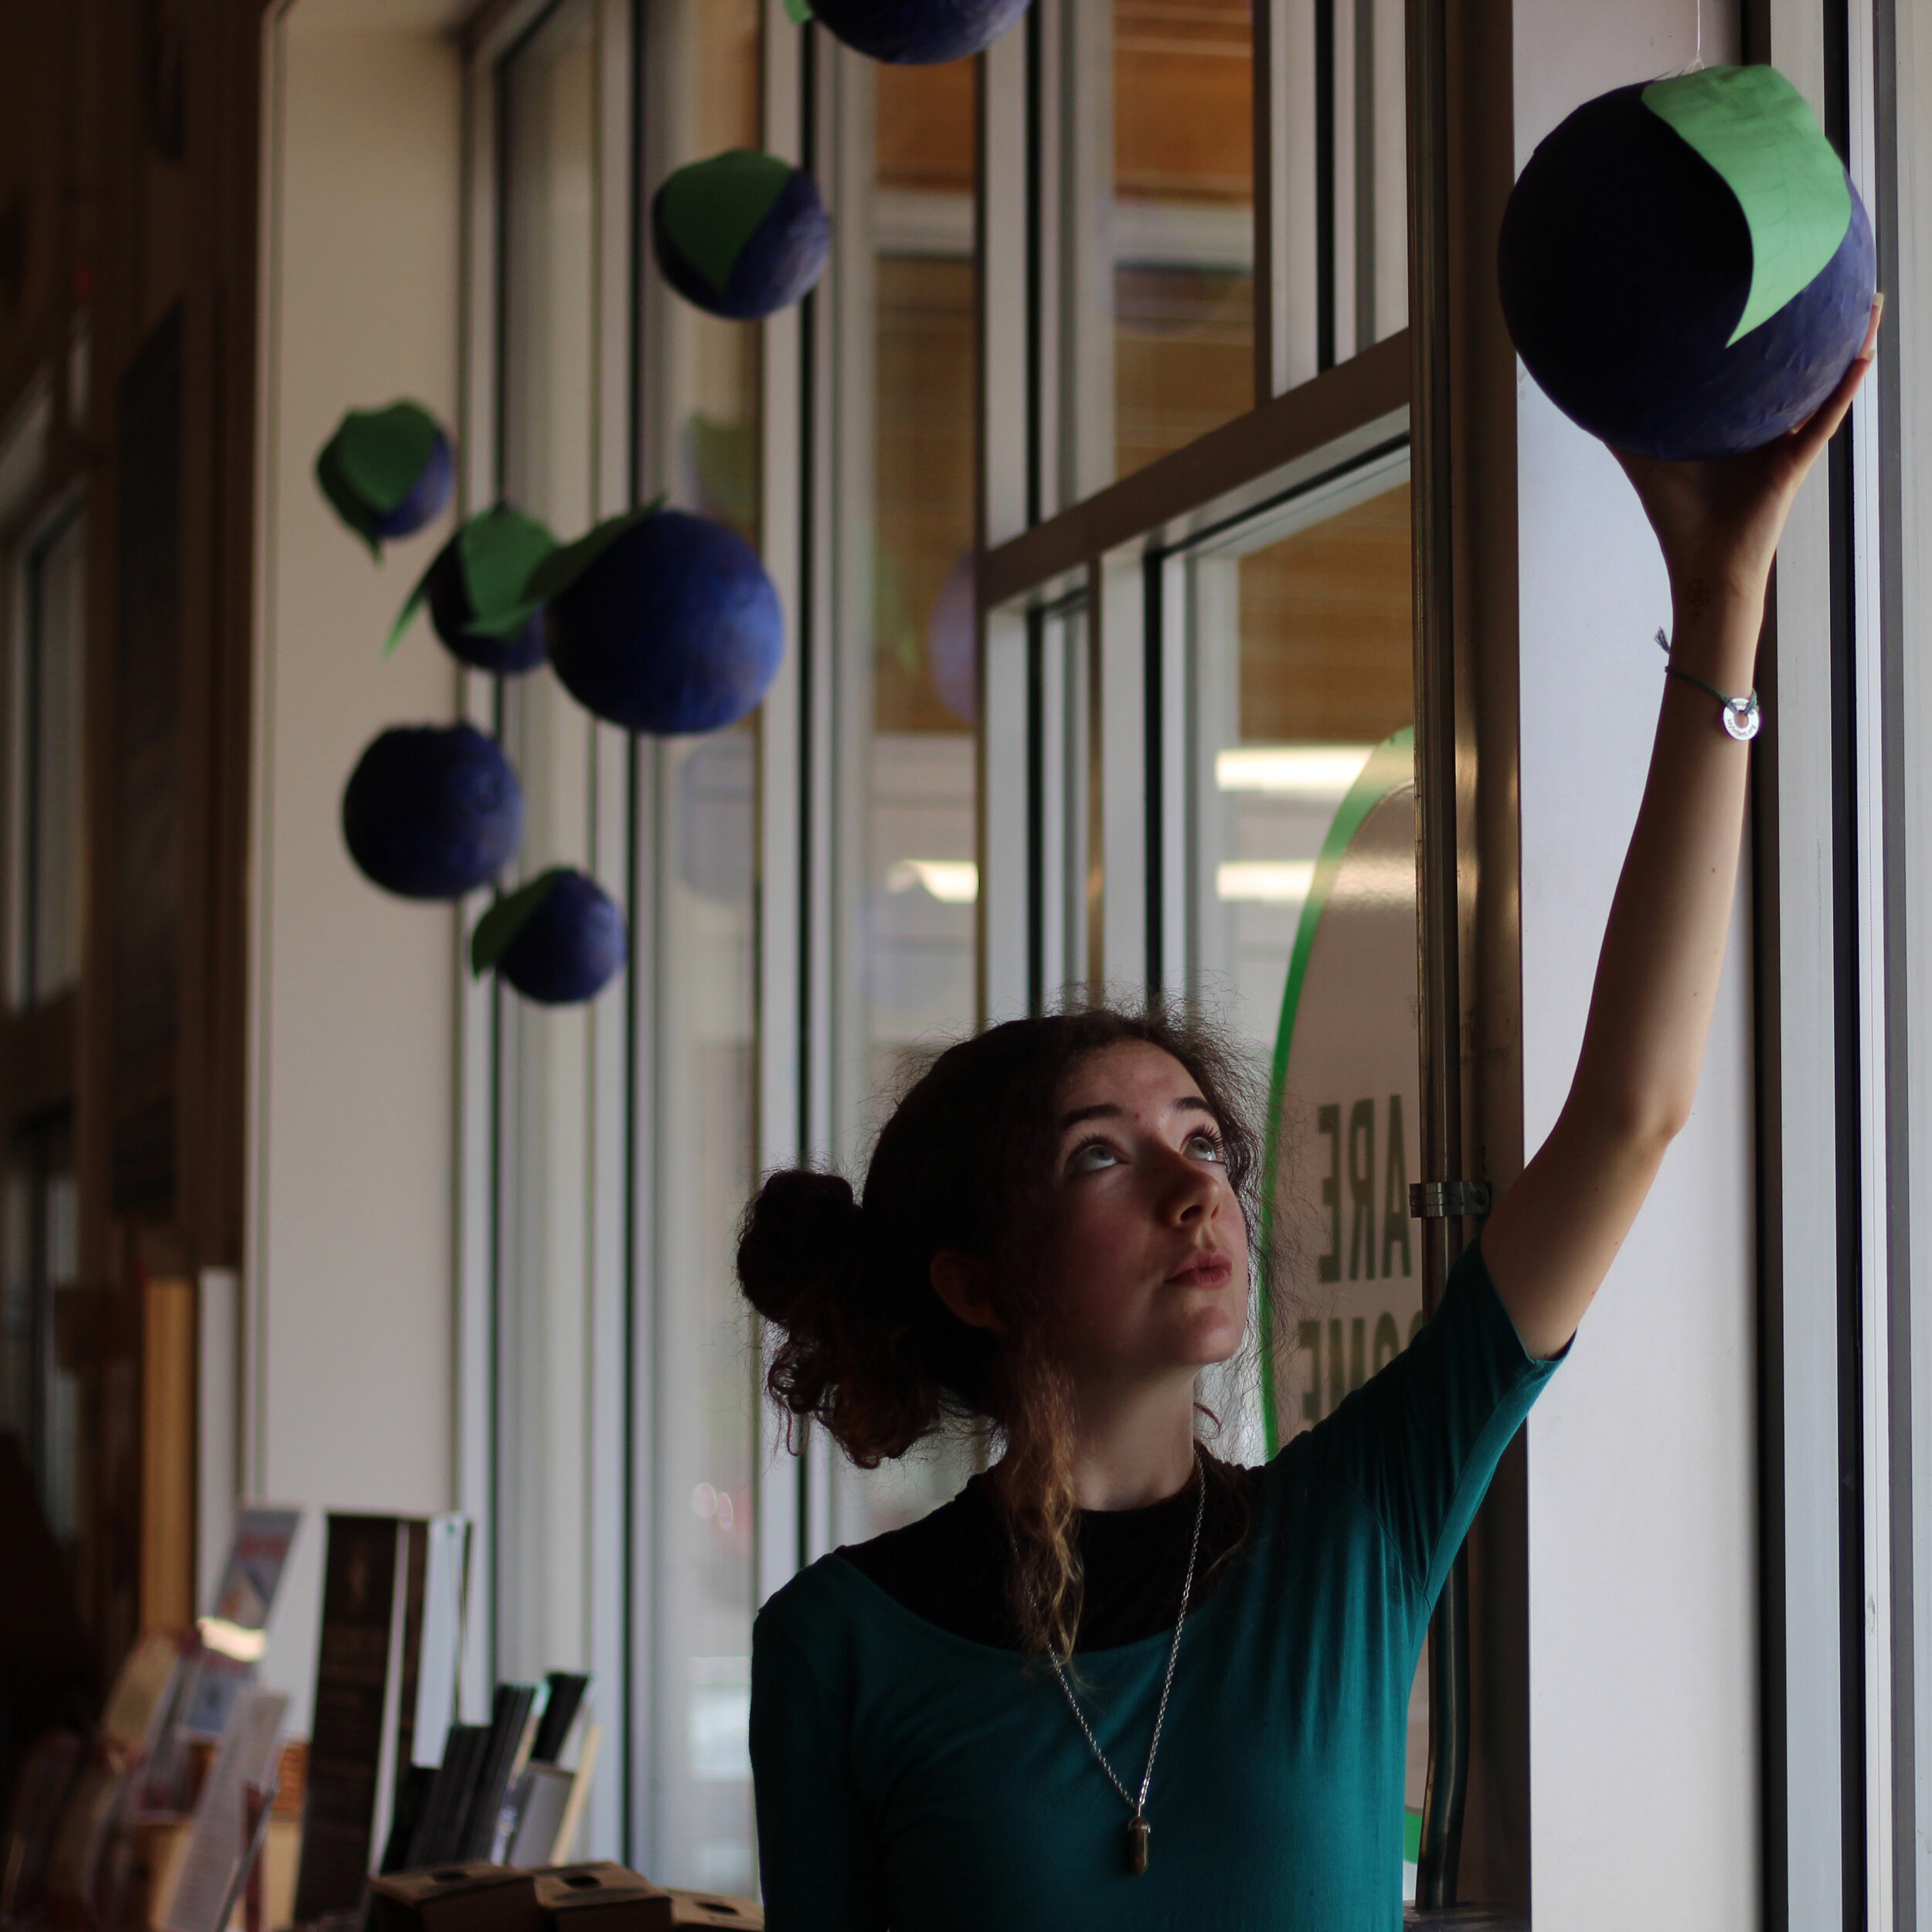 Ceiba Crow with her blueberry art installation,